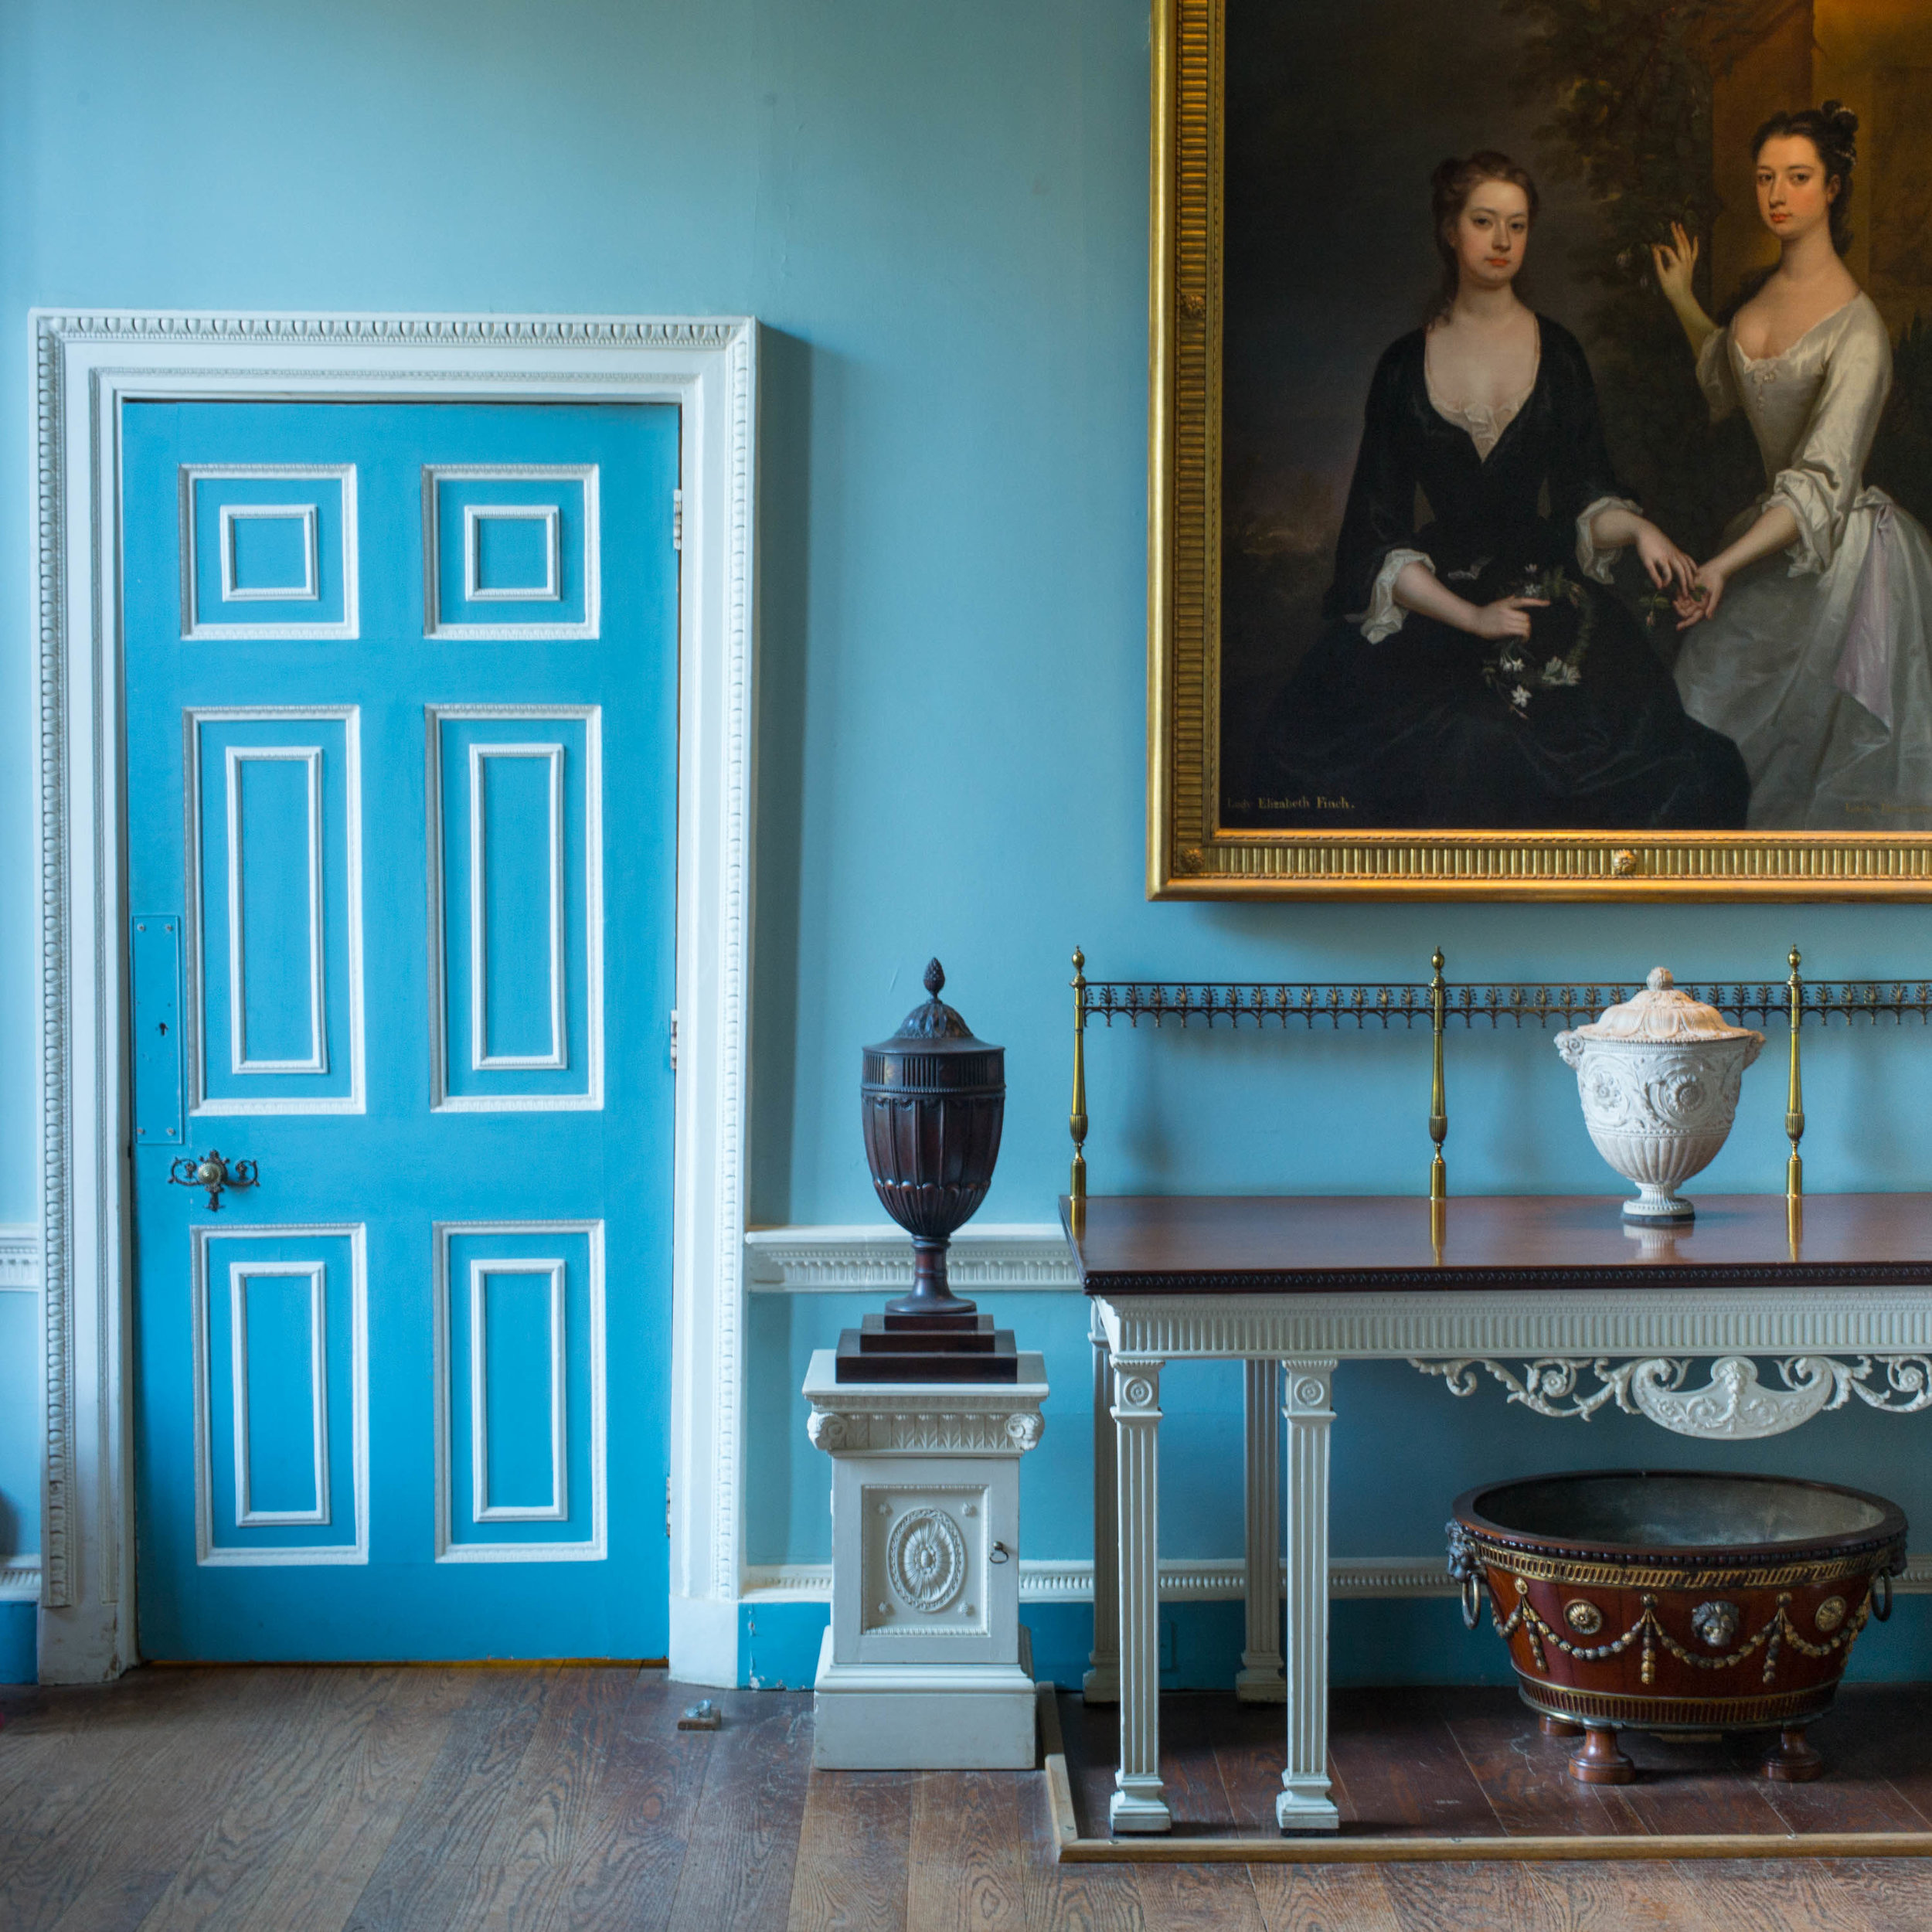 "Kenwood House Blue, 2016, archival inkjet print, 13.5"" x 13.5"" unframed"